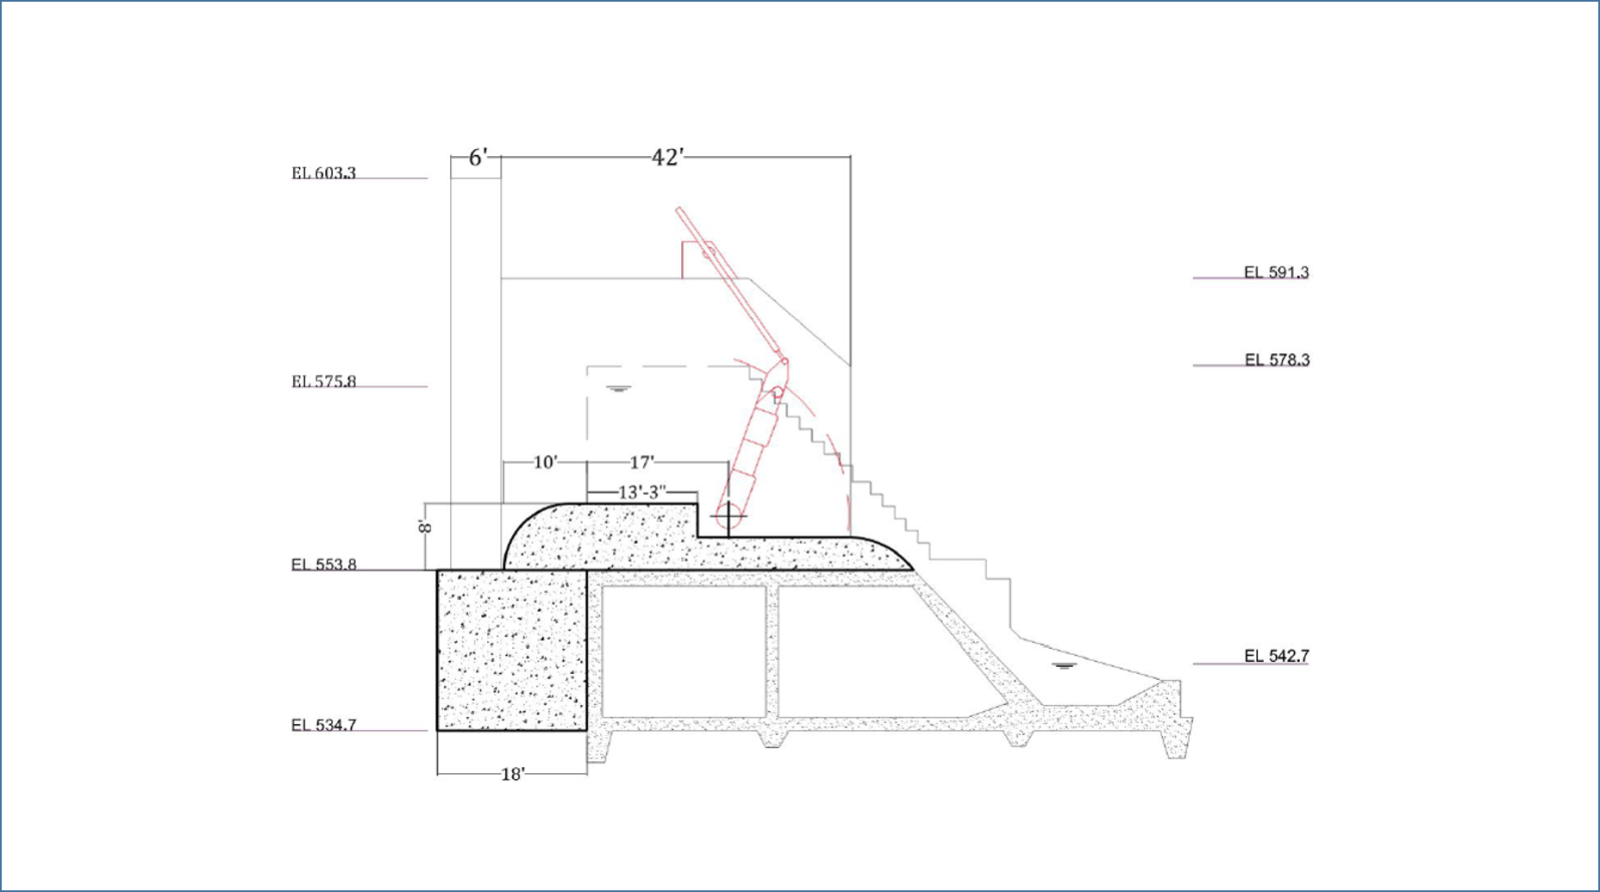 medium resolution of  to modify the dam in a manner that will allow the gates to be attached to the structure a schematic of these improvements is shown outlined in black in